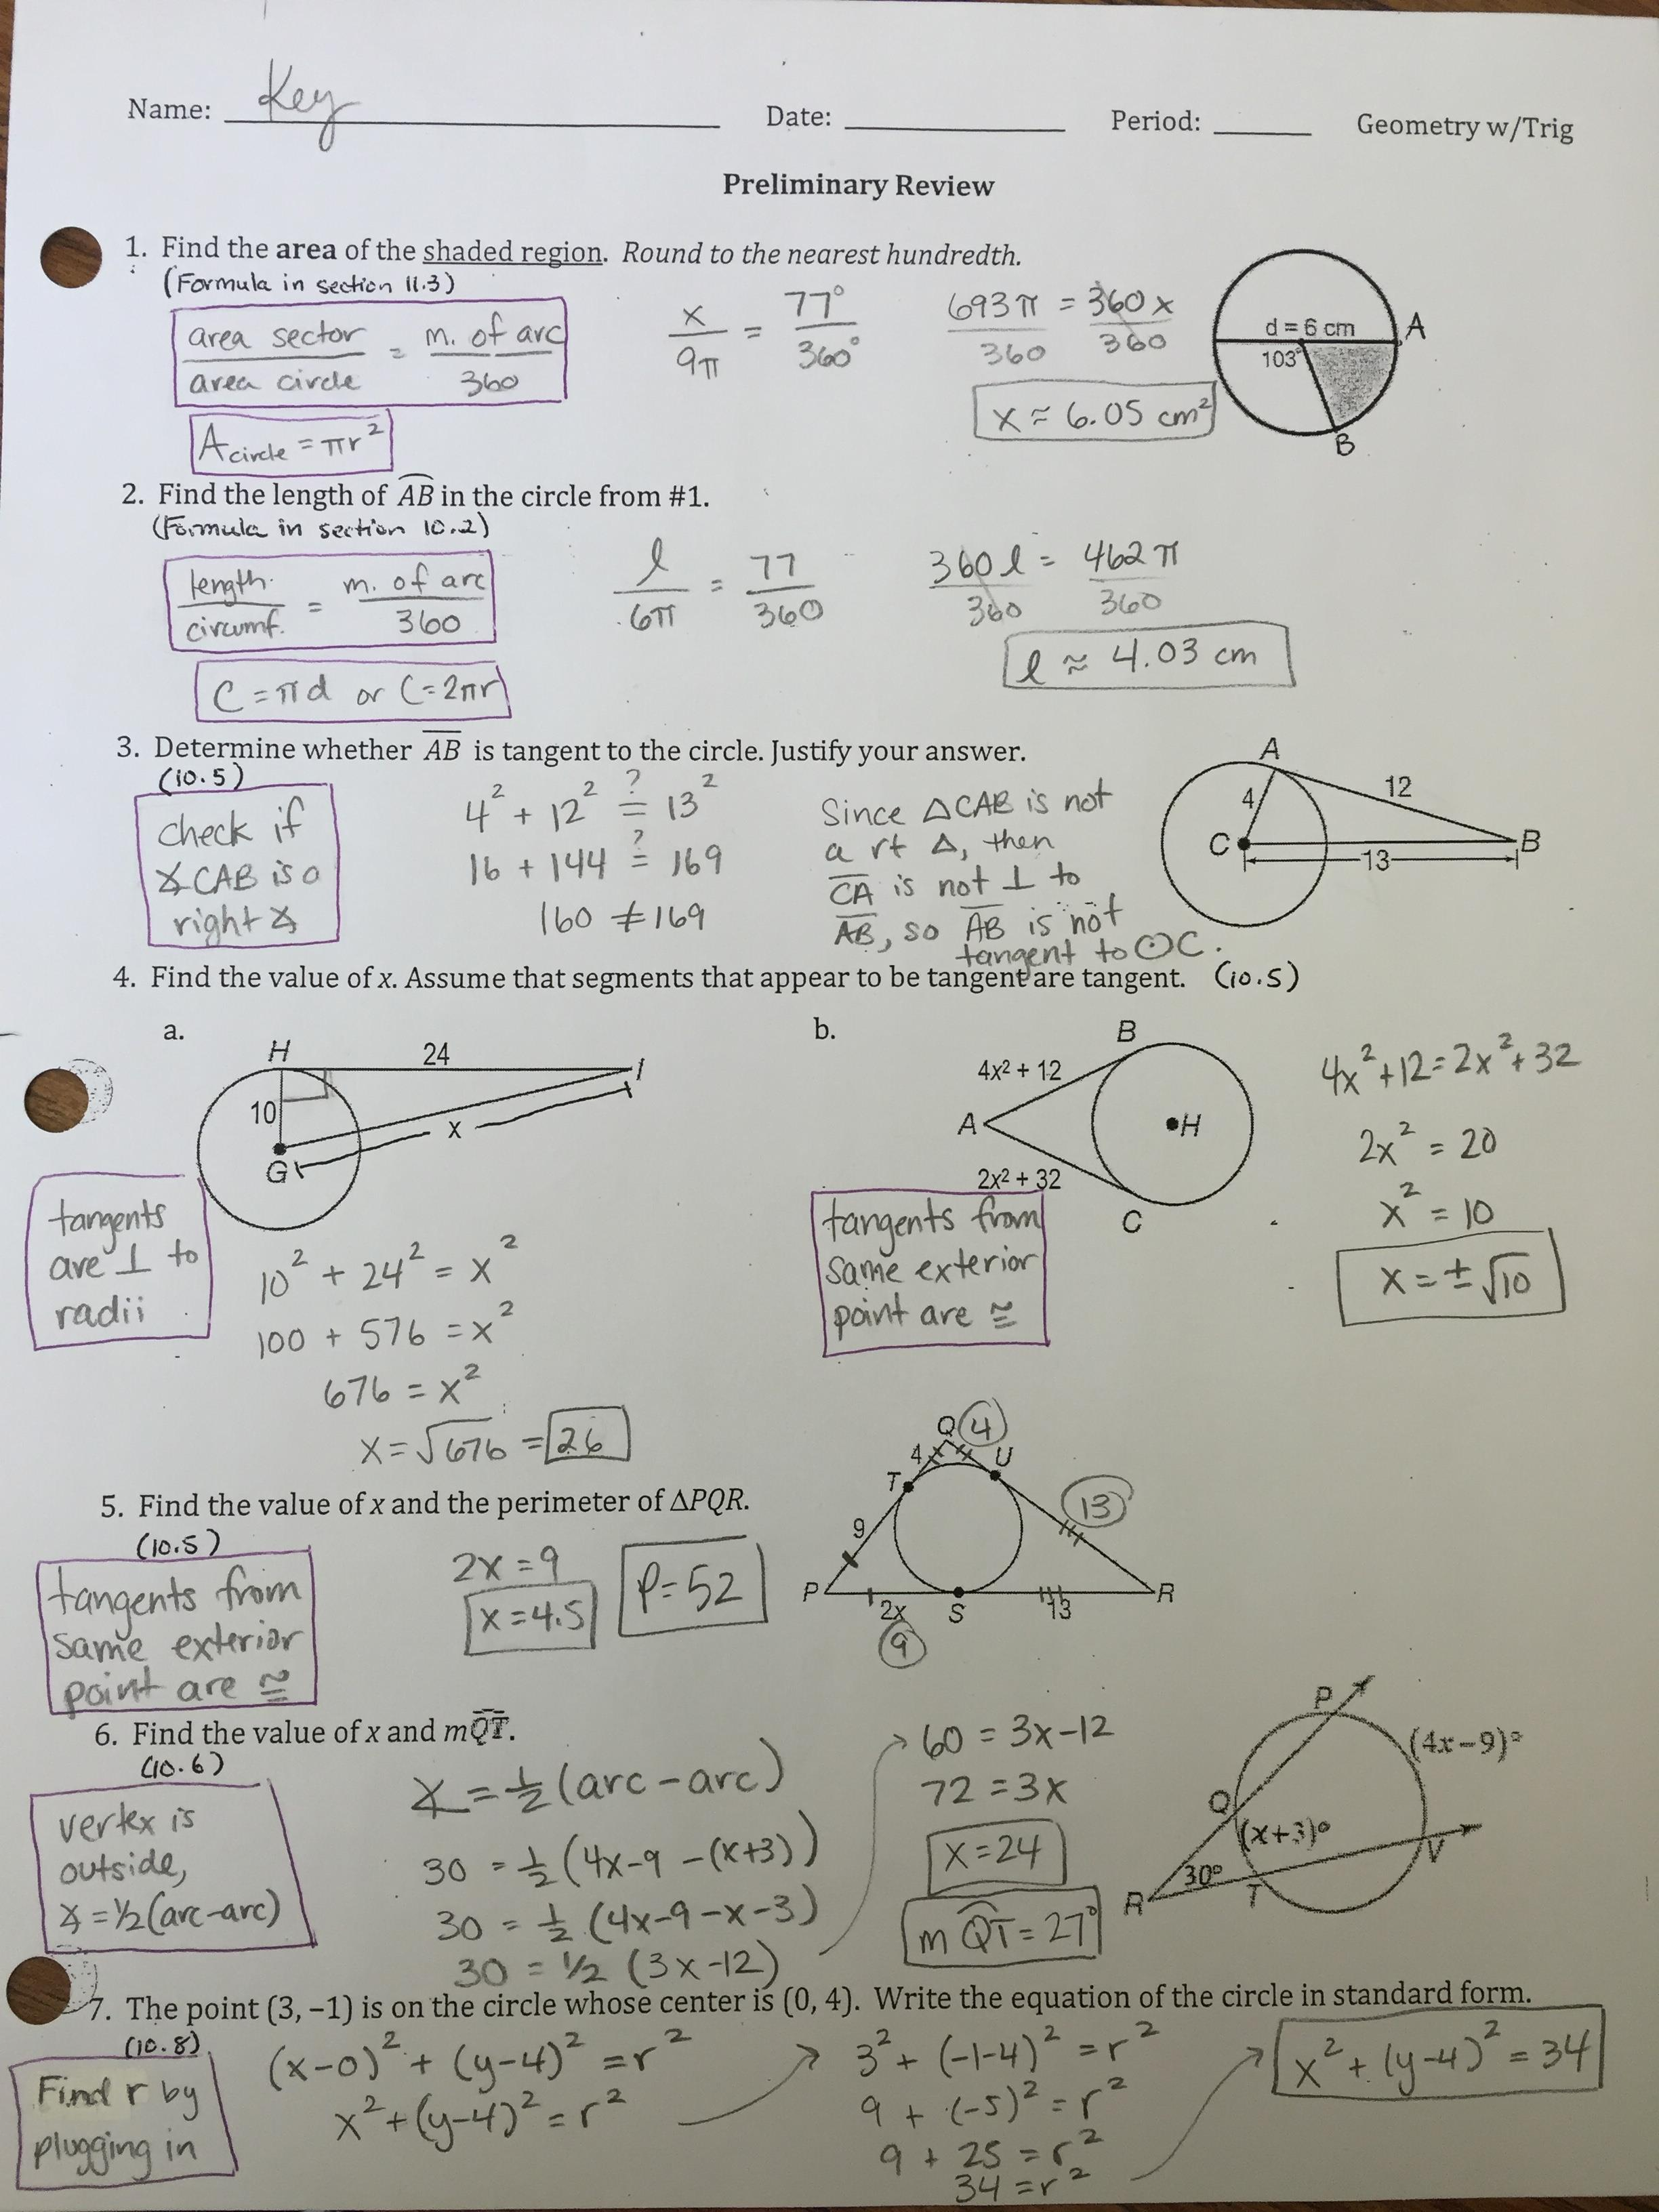 Worksheets Find The Area Of The Shaded Region Worksheet